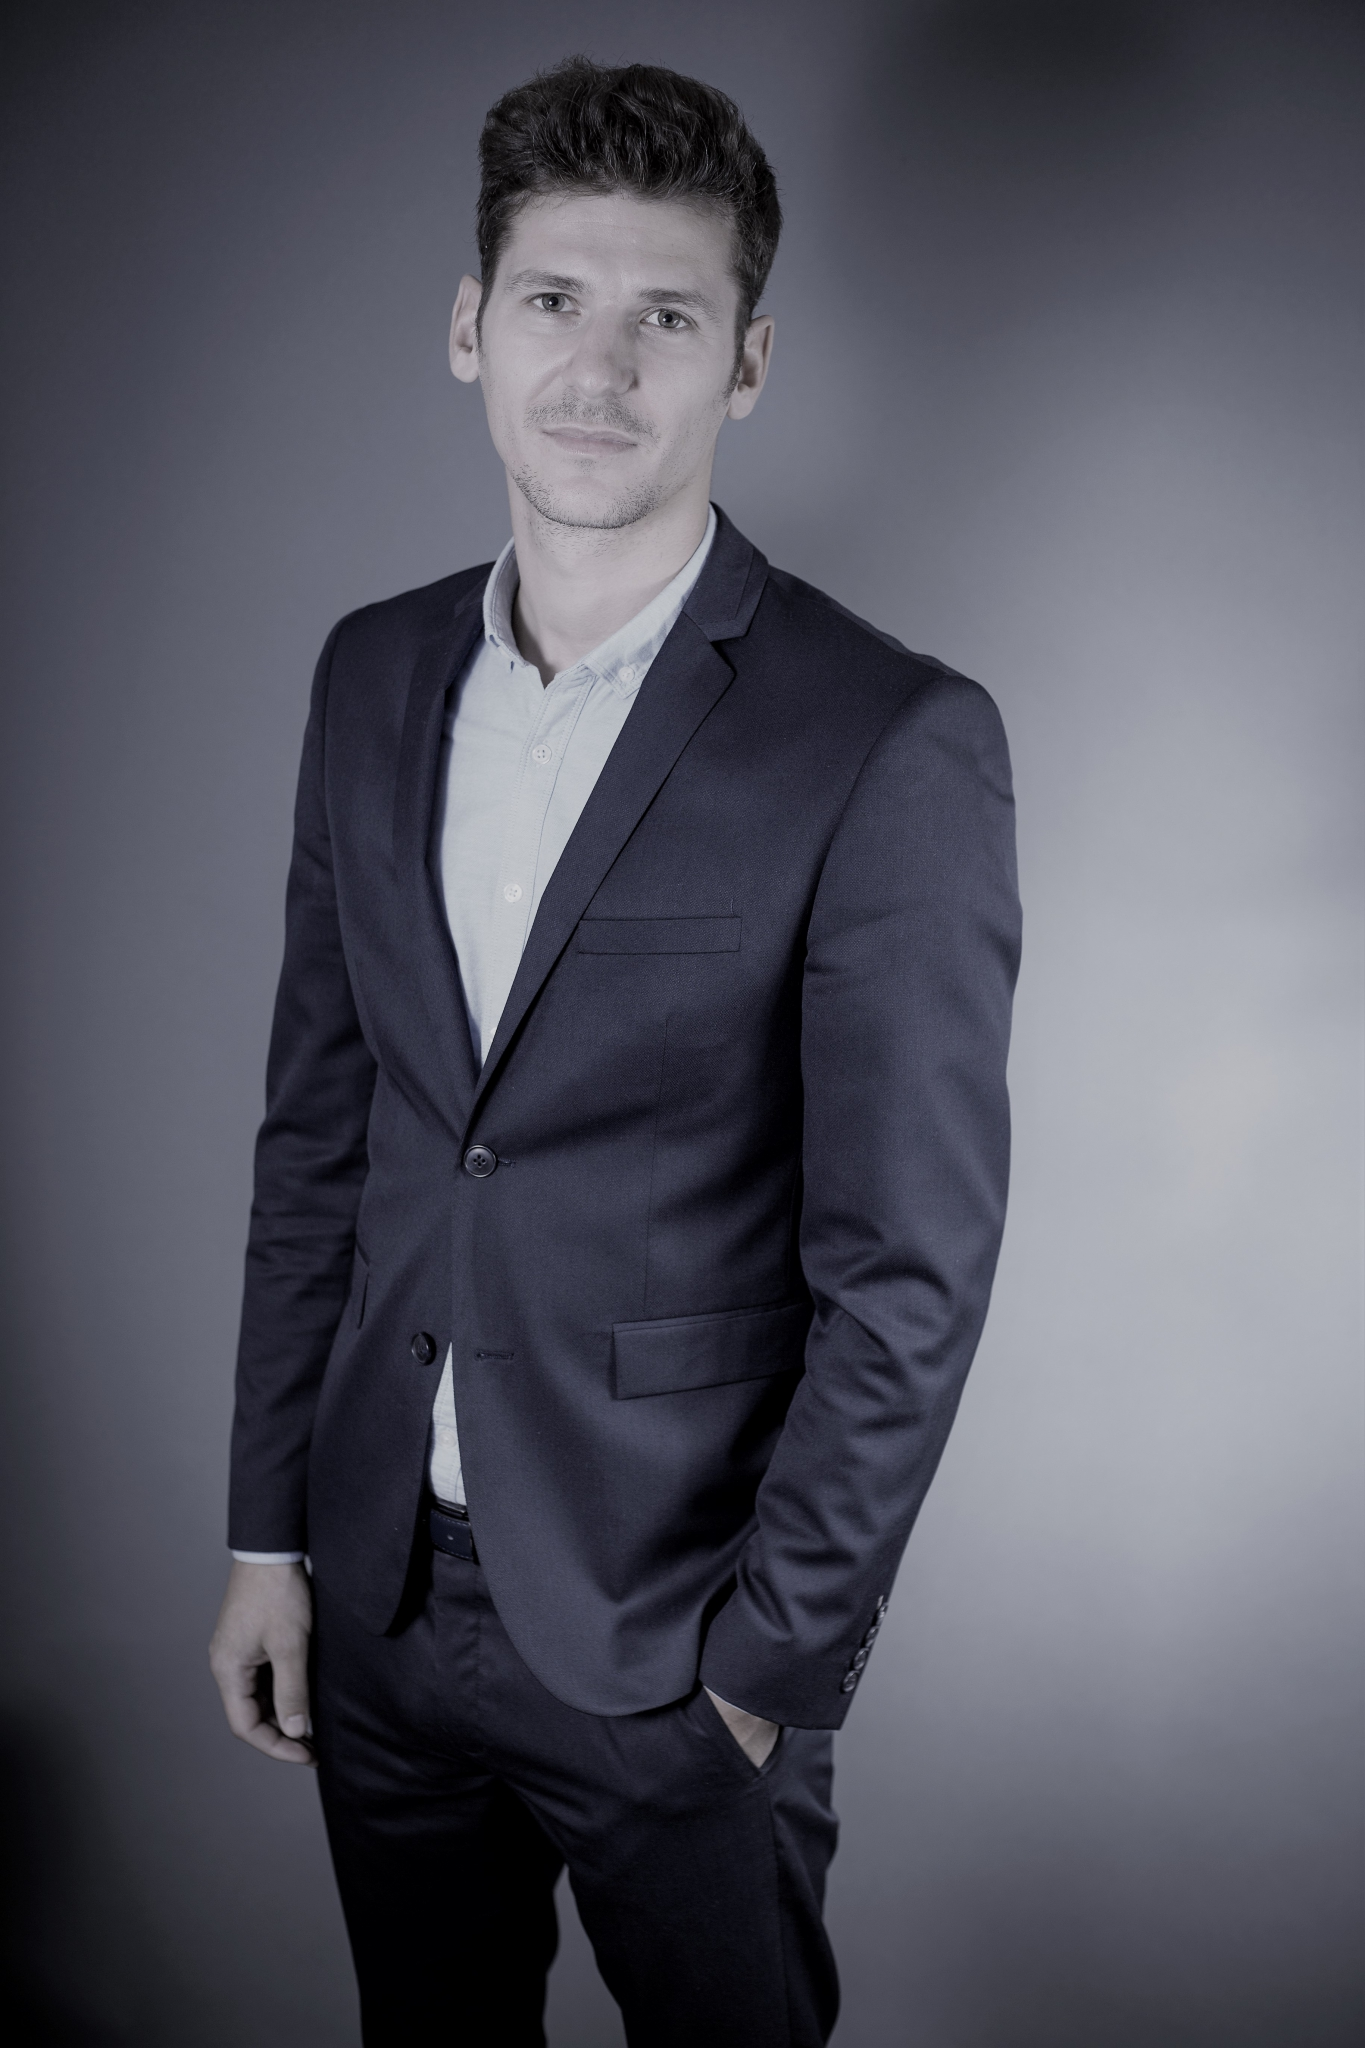 Alexandre Perrin - Account Manager - Iconomedia Saison 2